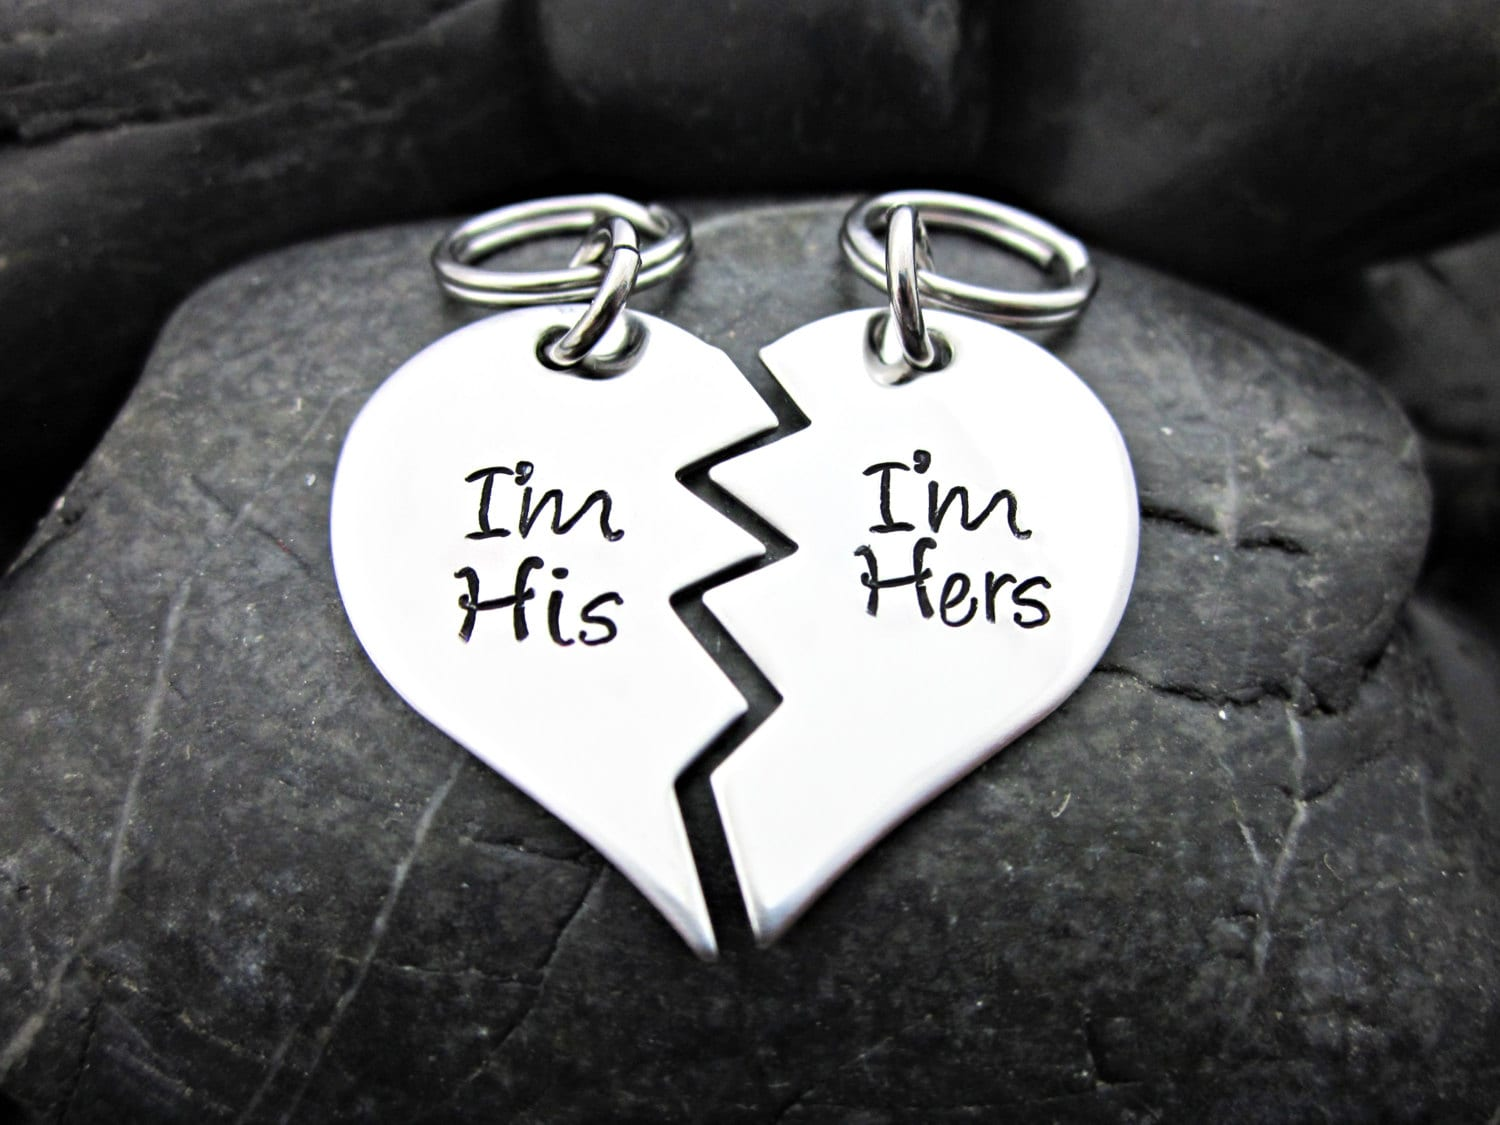 Couple's Keychains Couple's Necklaces His and Hers